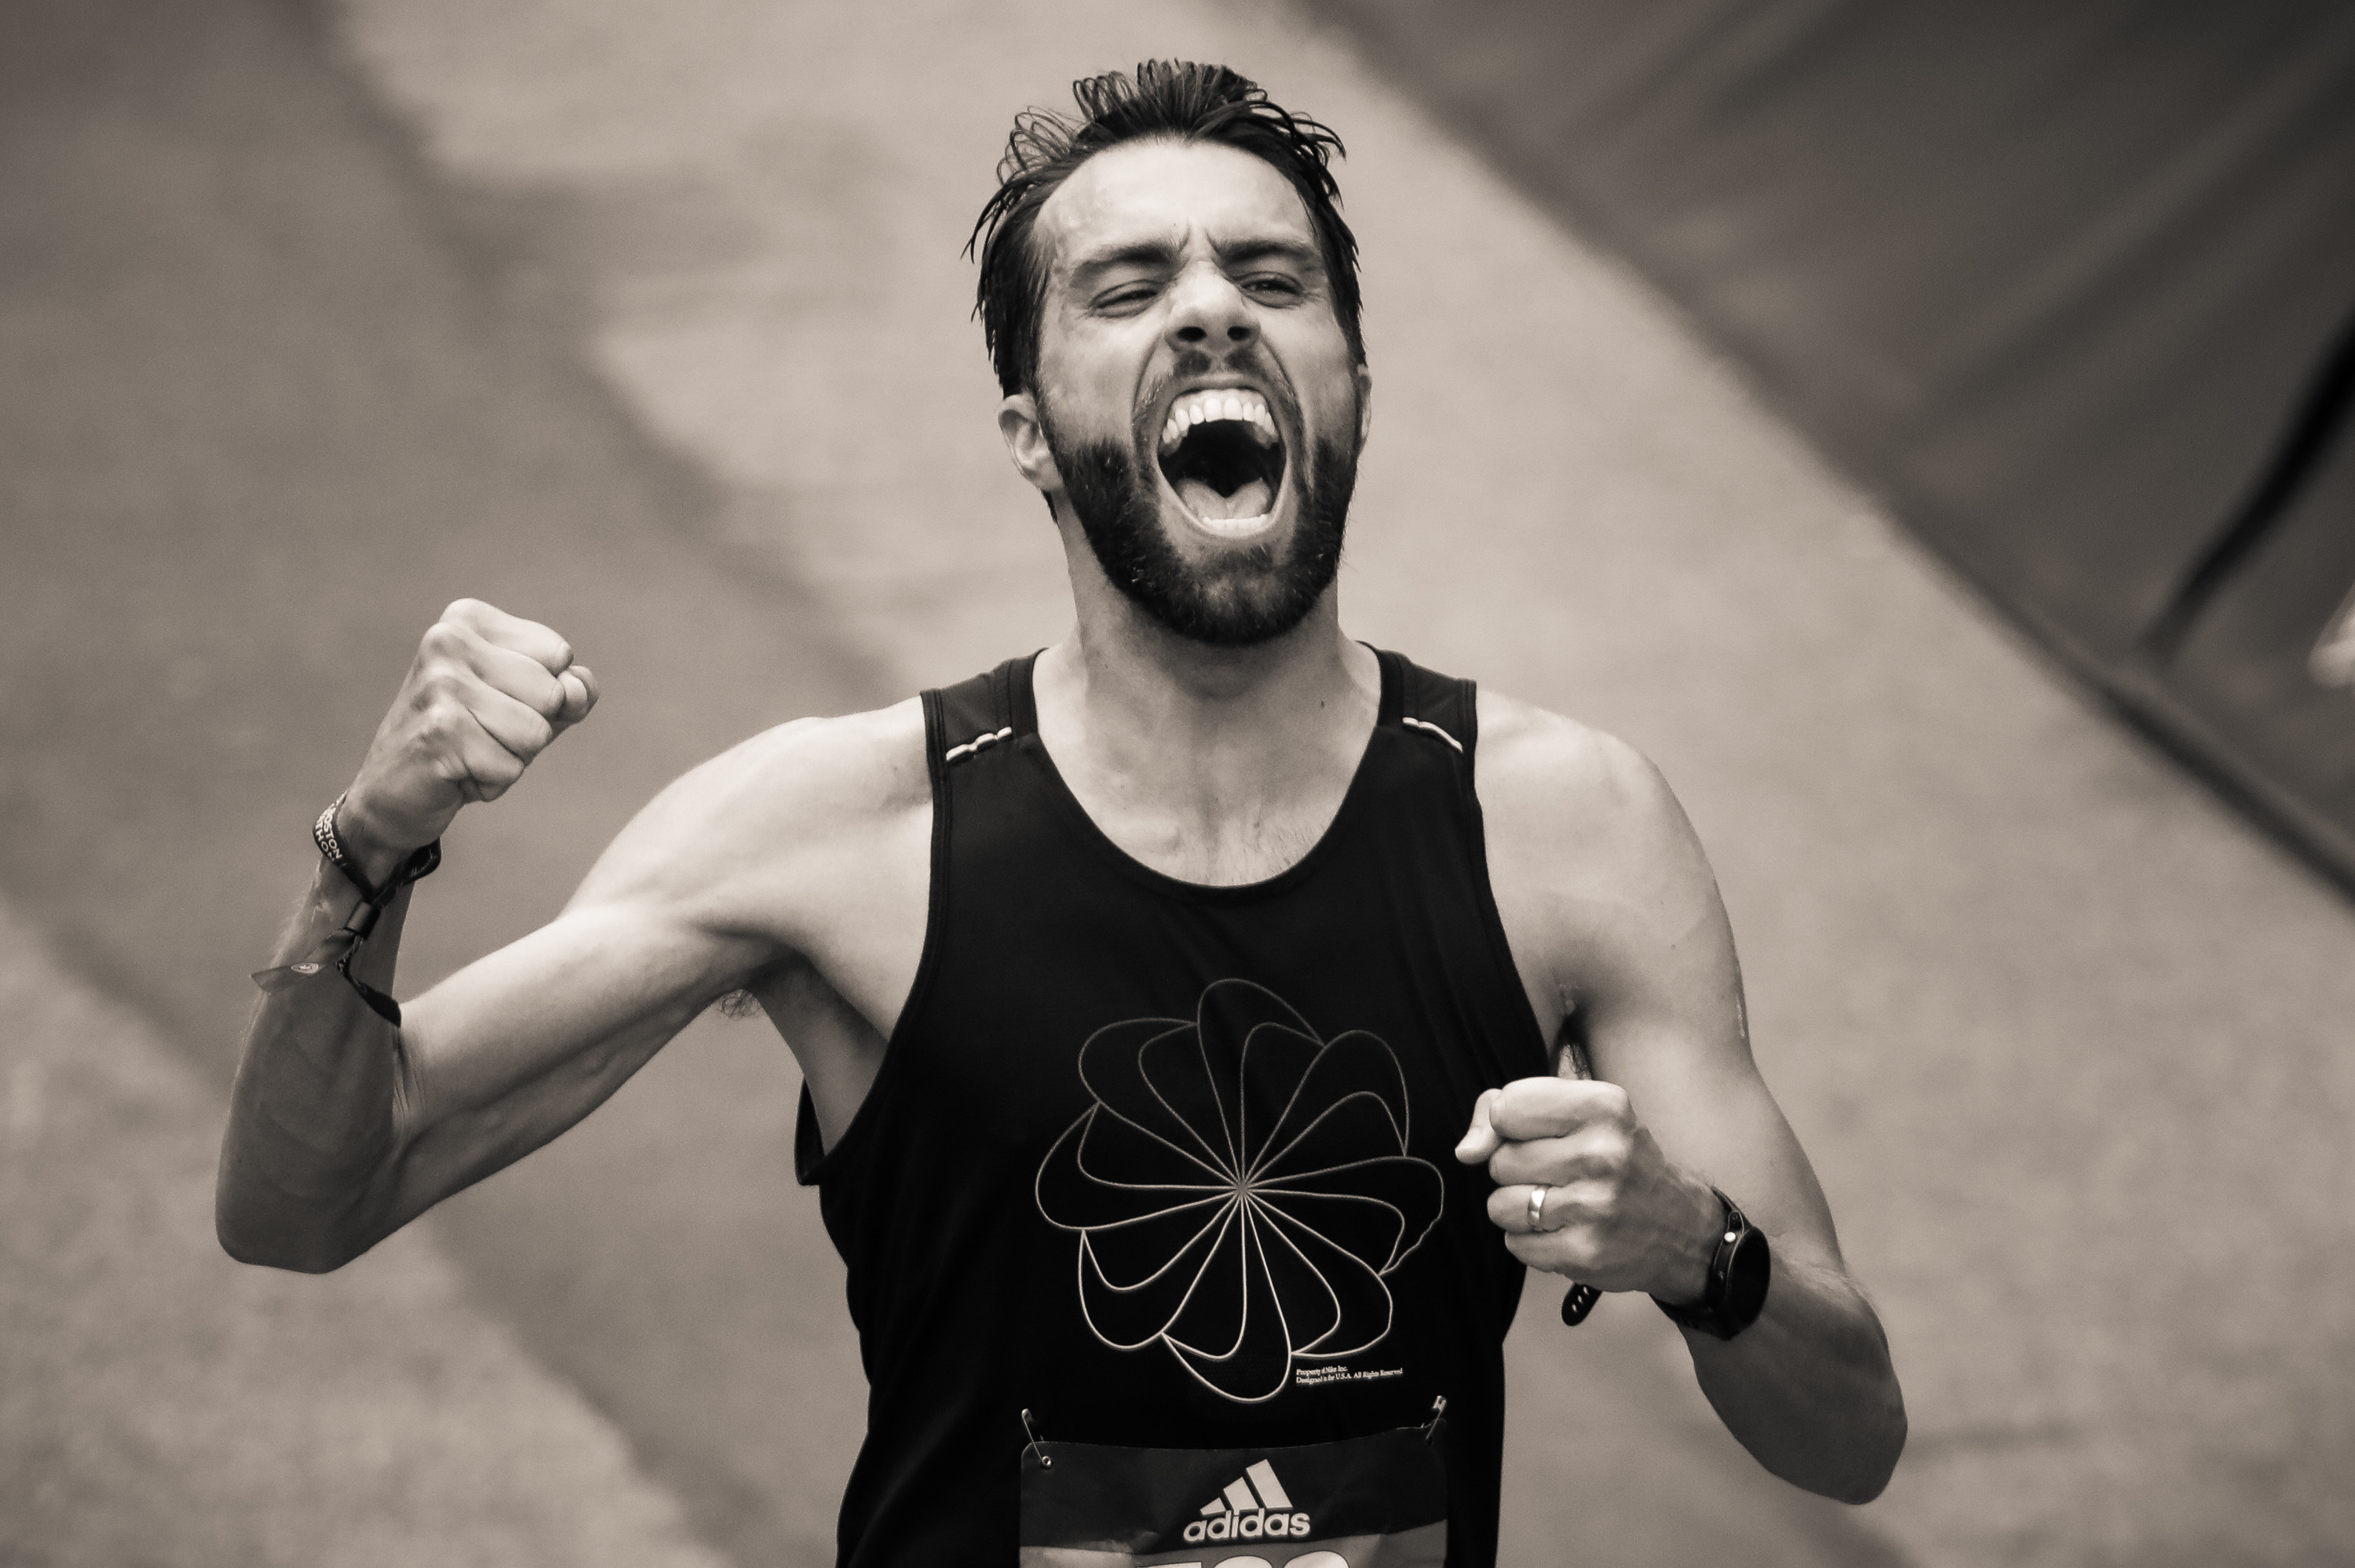 A man pumps his fist crossing the finish line